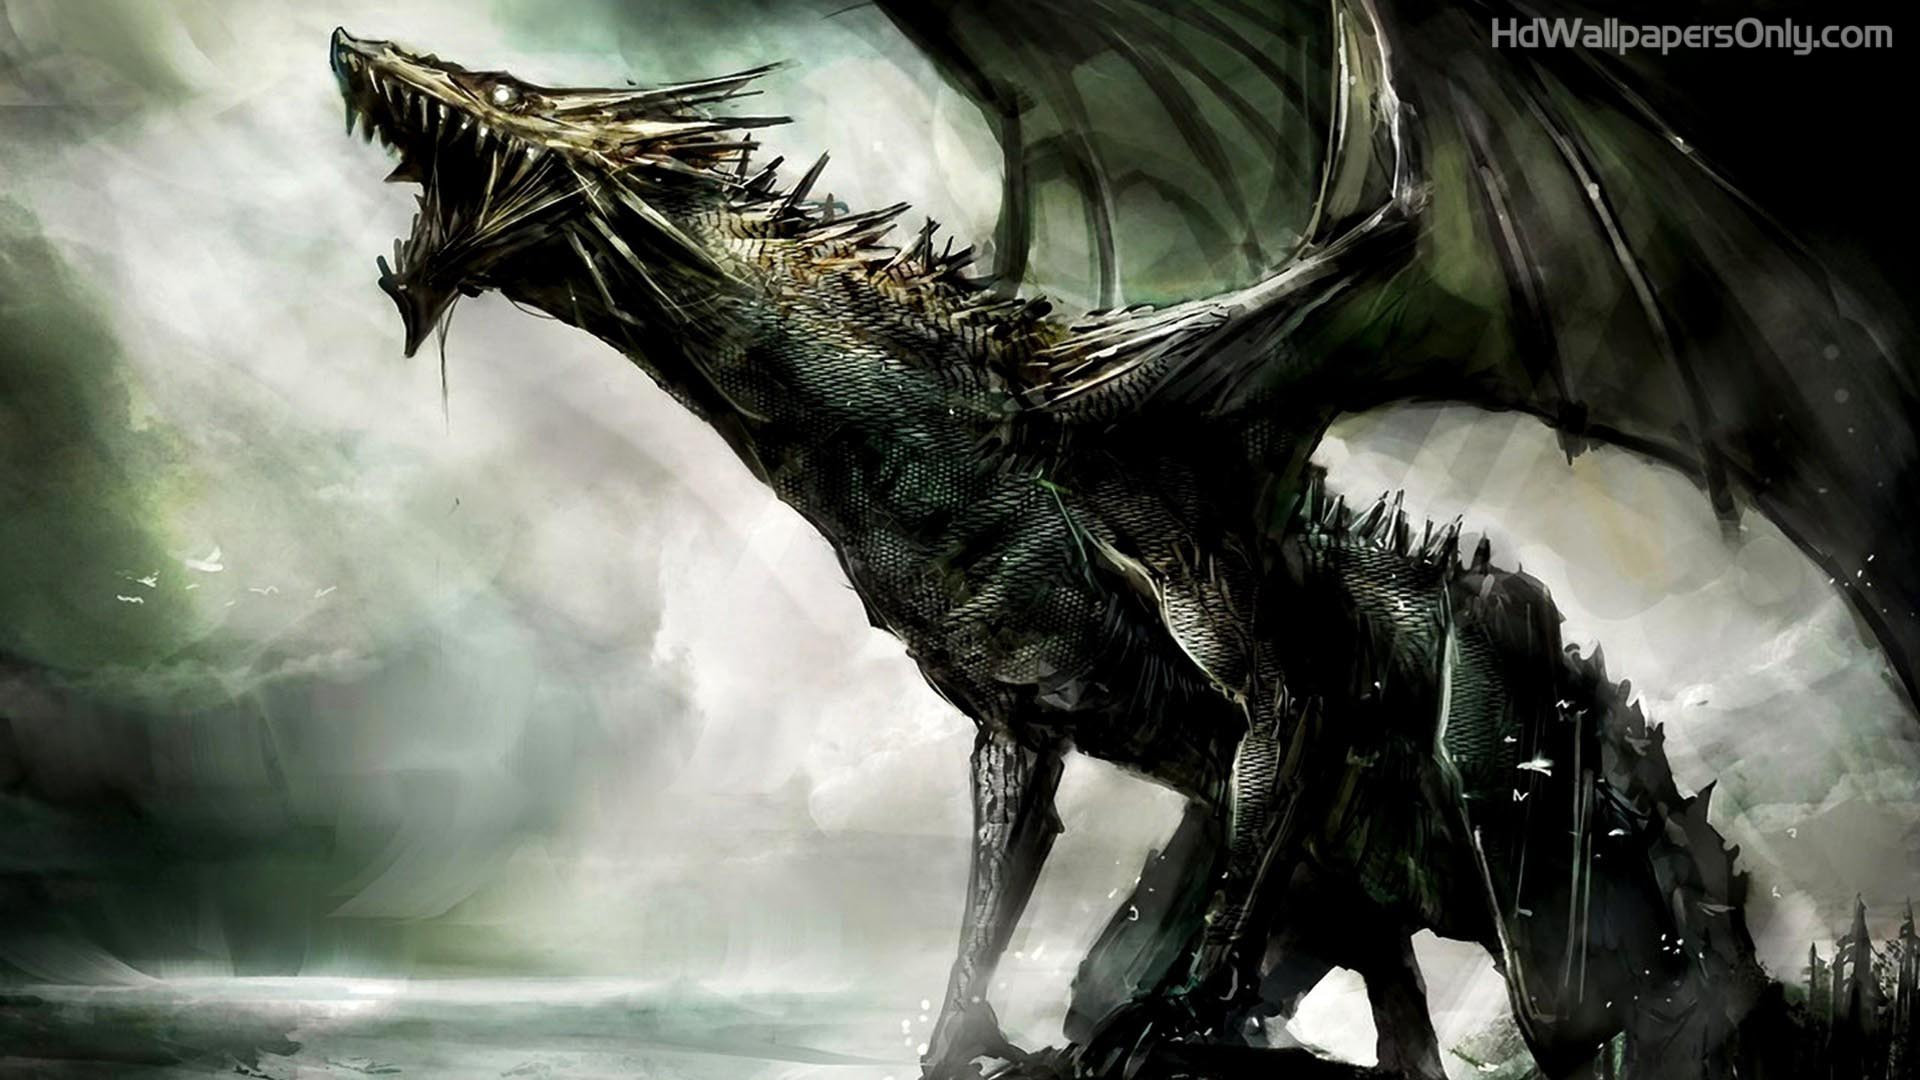 black dragon hd wallpaper 4hotos a· download